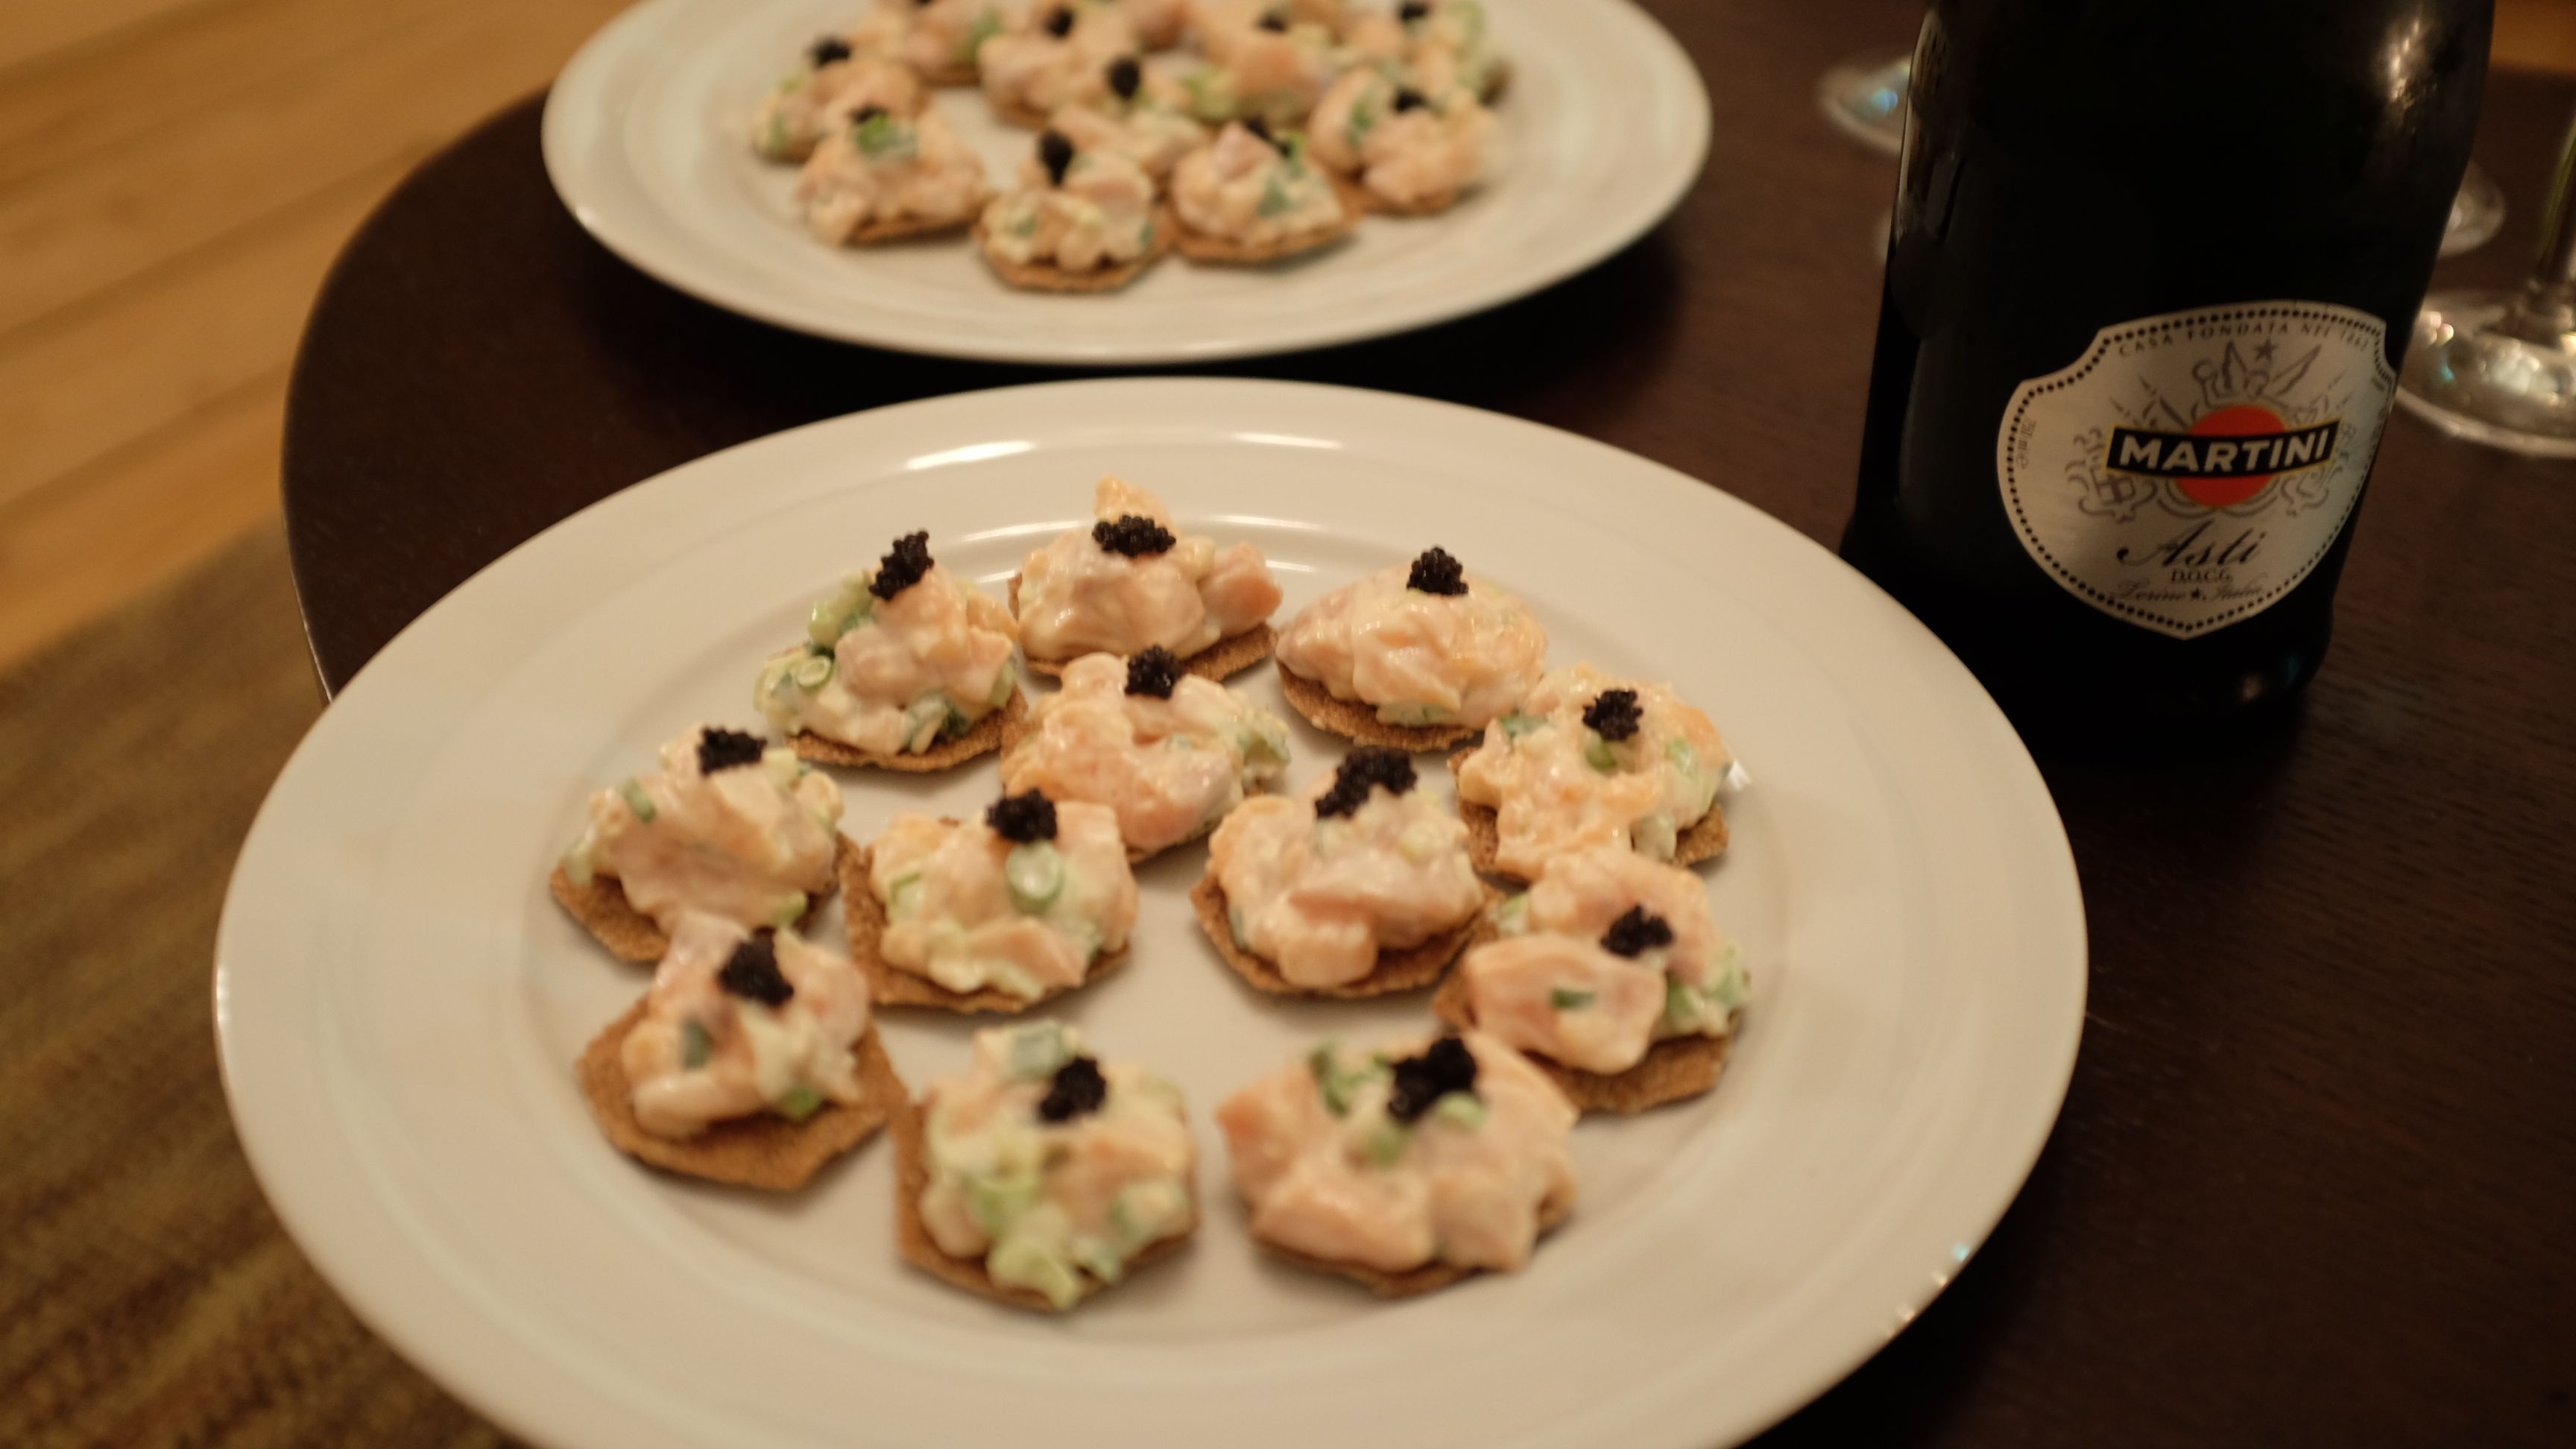 Salmon tartar - Canapes for New Year's Eve